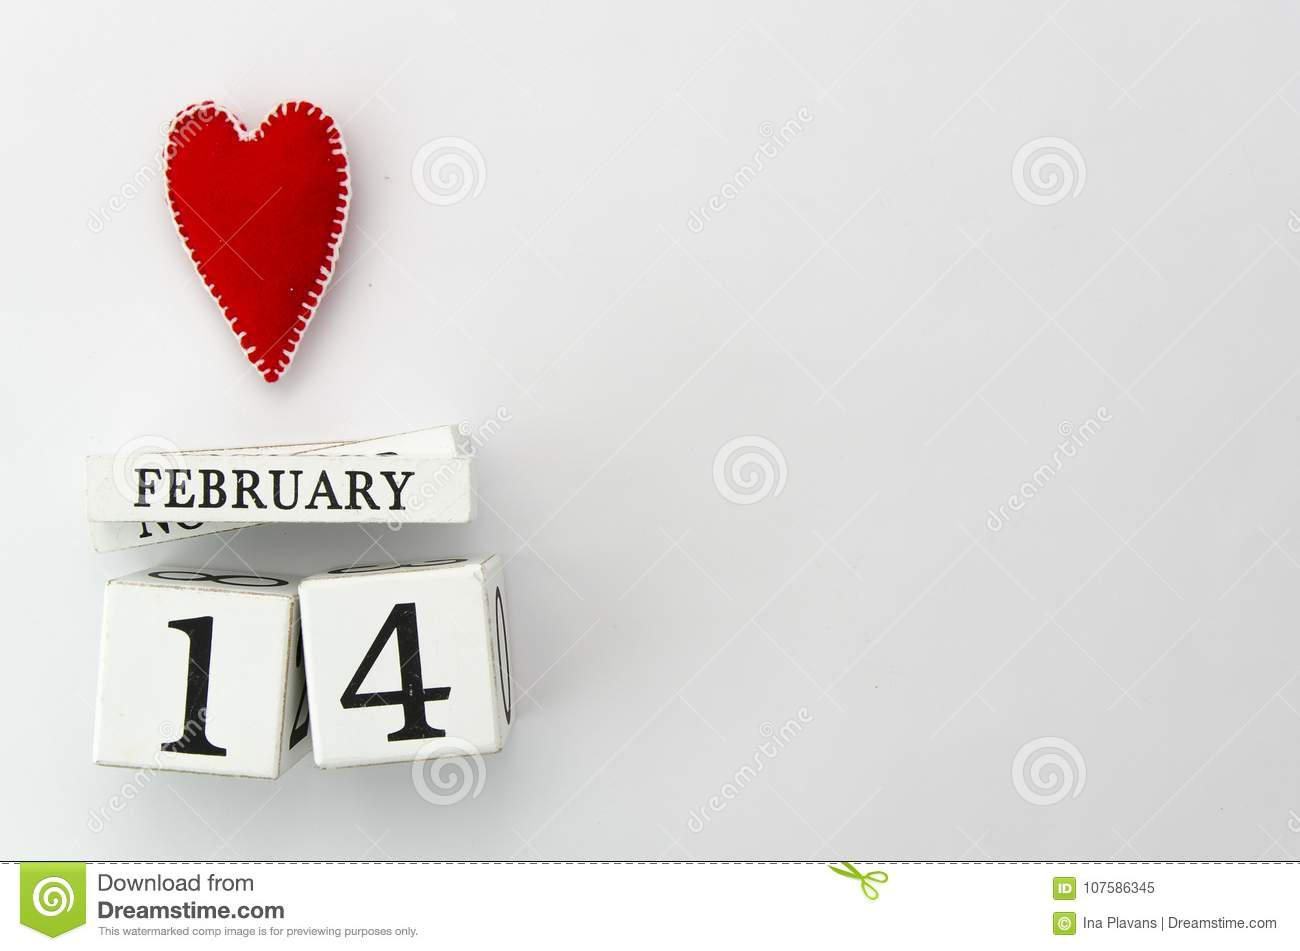 14 February White Wood Calendar With Red Heart On Top Valentine S